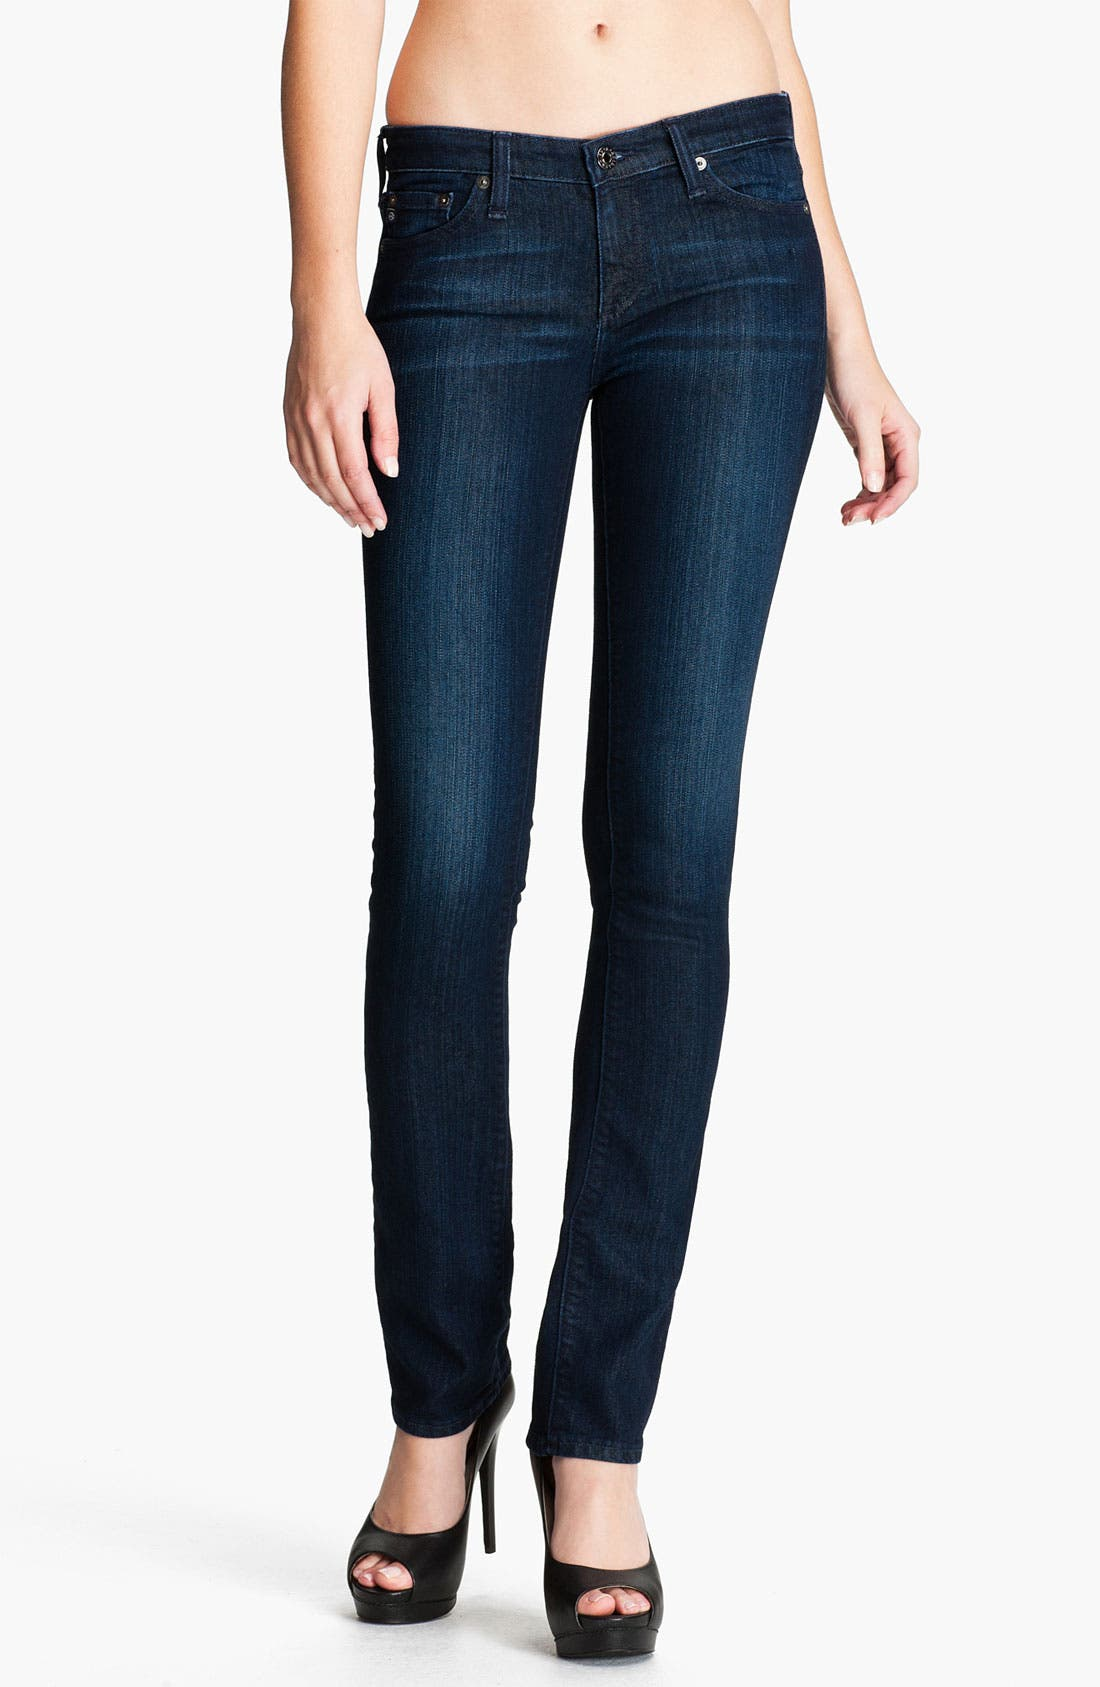 Main Image - AG Jeans 'Ballad' Slim Bootcut Stretch Jeans (Viy Vision)